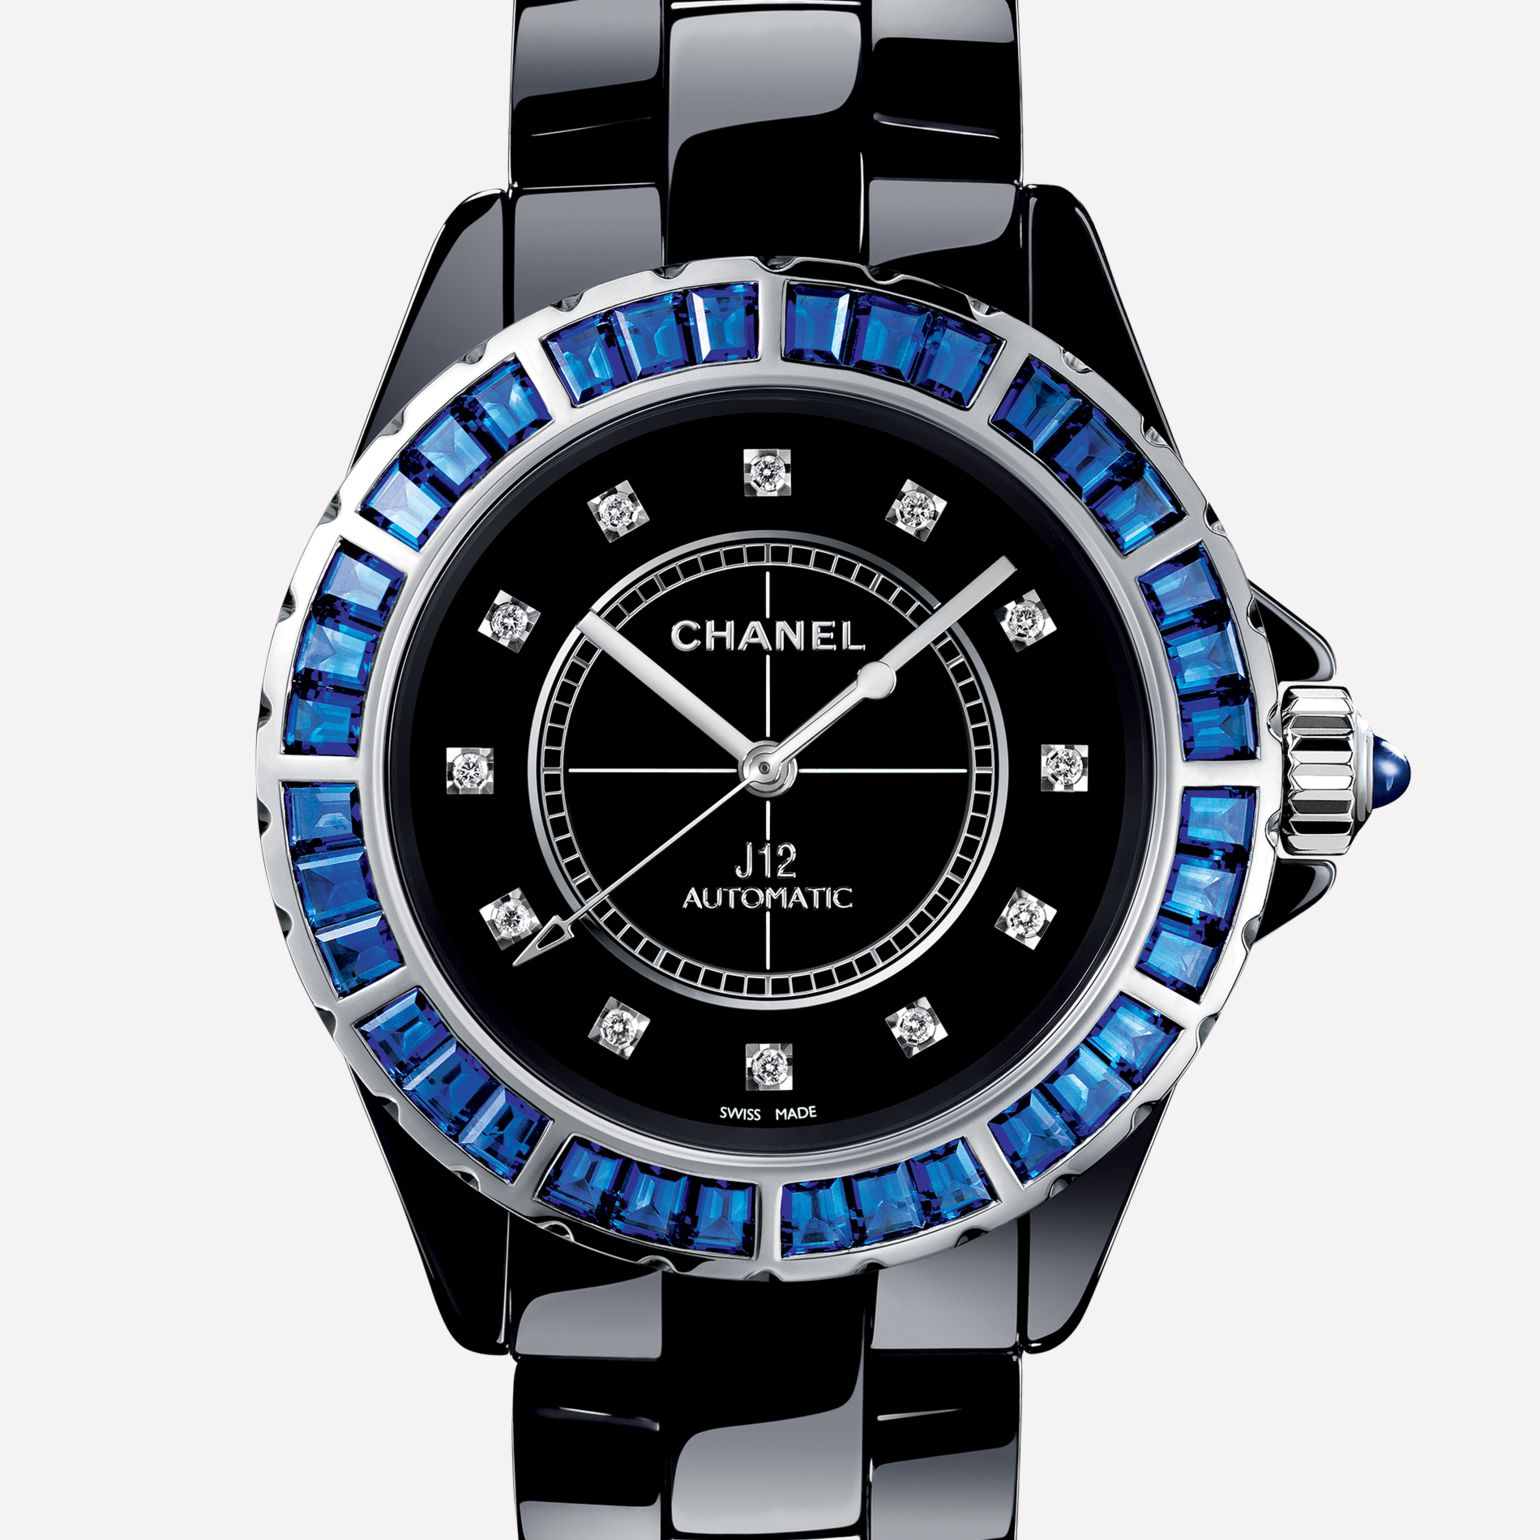 J12 Jewellery Watch Black ceramic and white gold, bezel set with baguette cut blue sapphires, diamond indicators